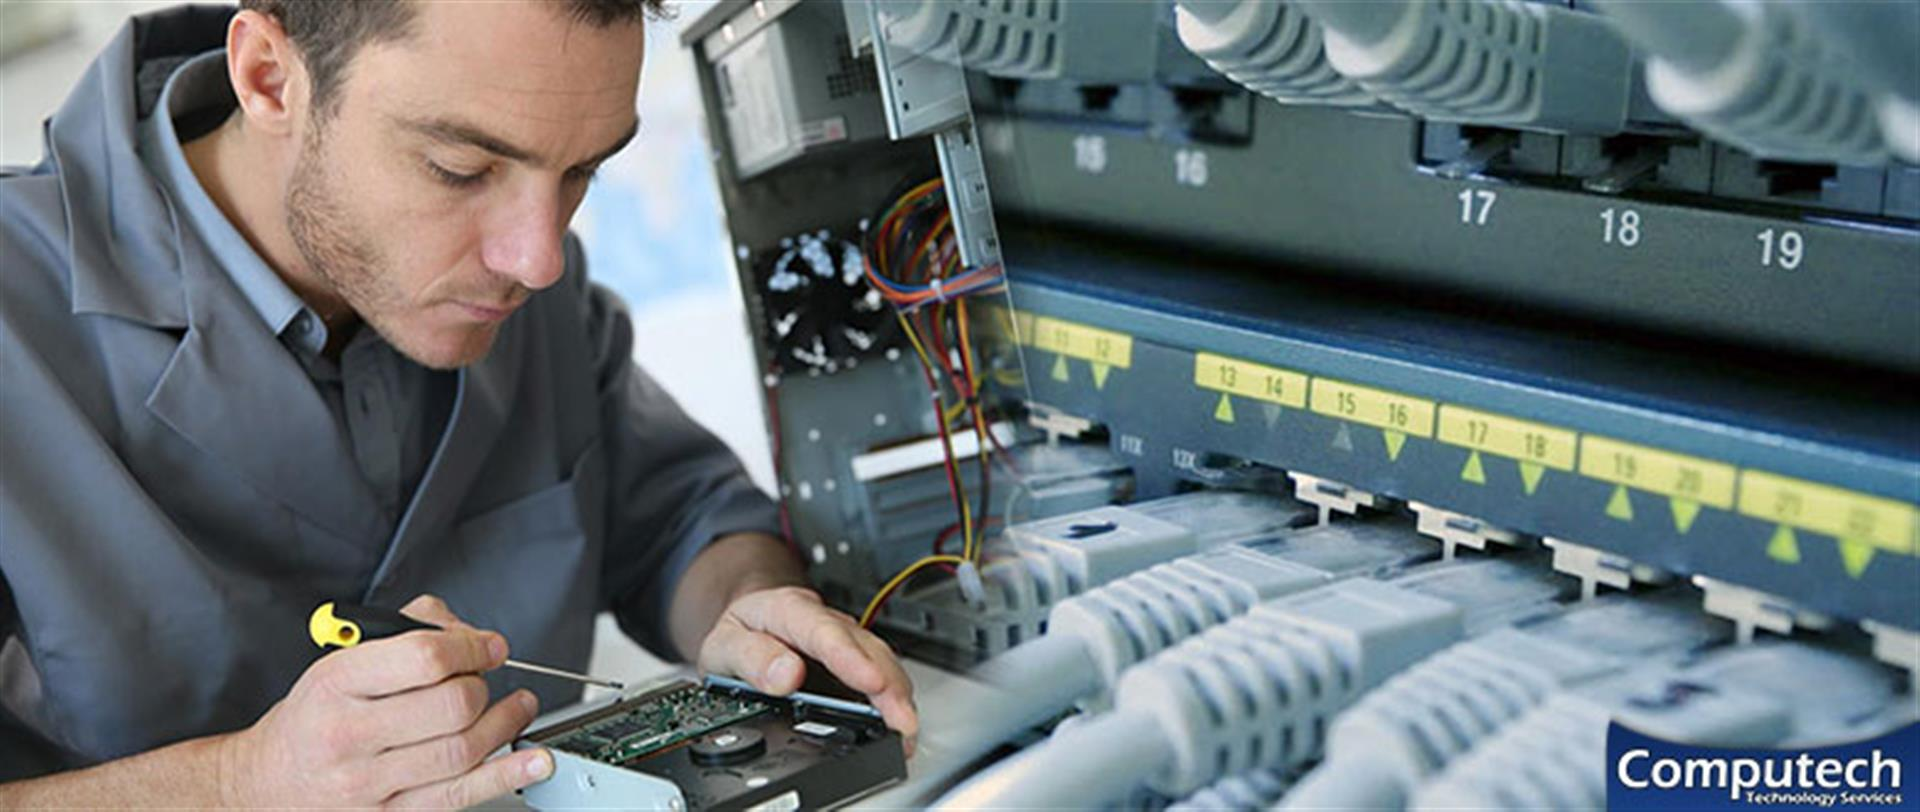 Monroeville Alabama Onsite PC & Printer Repair, Networking, Voice & Data Inside Wiring Services